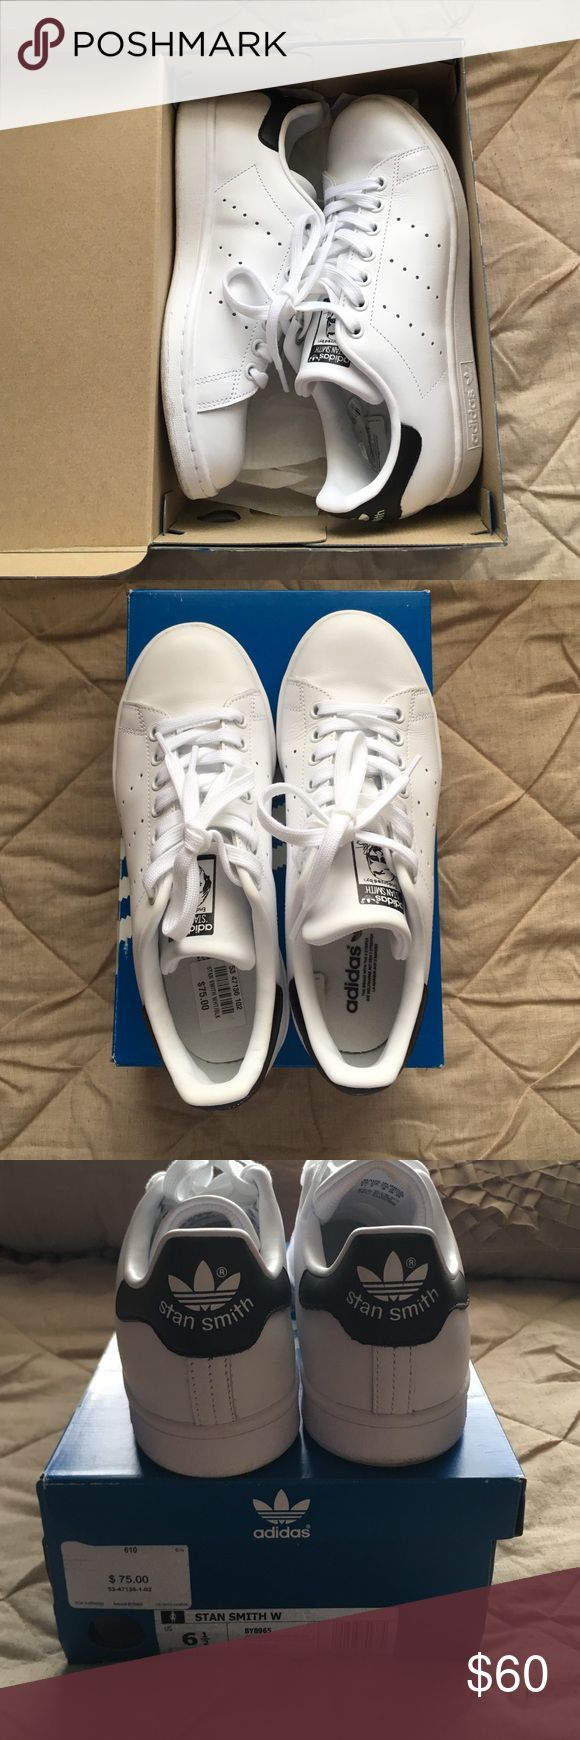 Adidas Stan Smith Adidas Stan Smith in size 6.5 (run .5 size large) Adidas Shoes Athletic Shoes